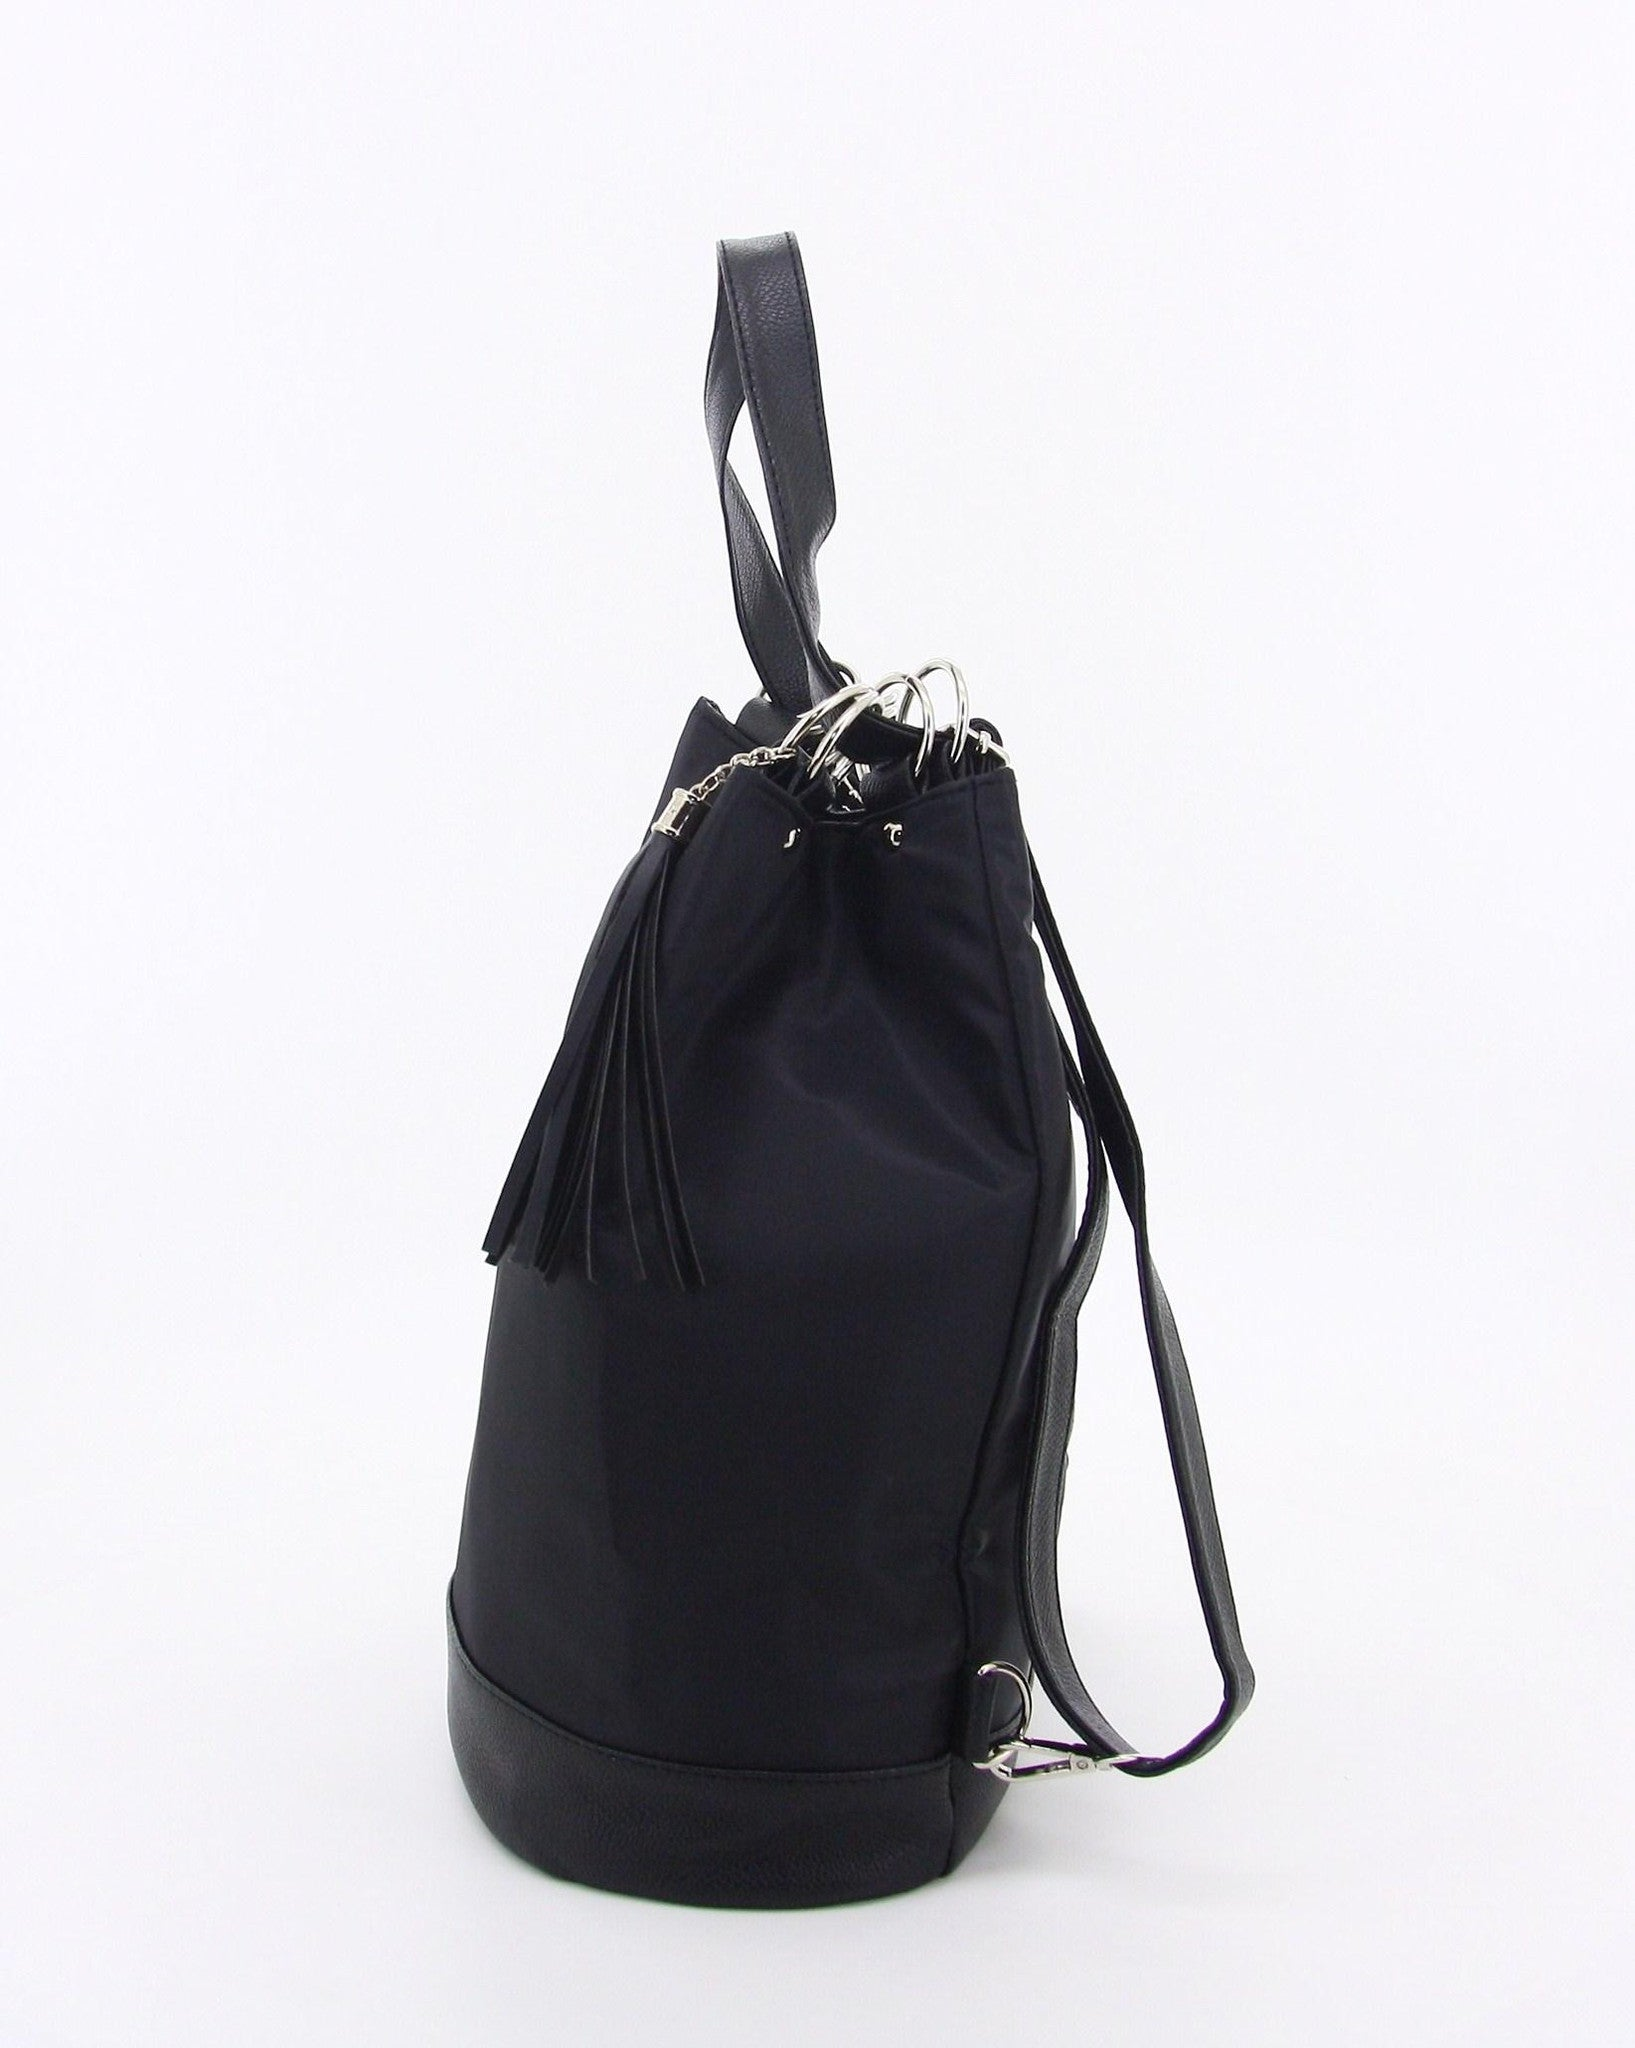 C17MR749BK 3-WAY BUCKET BACKPACK SLING BAG (BLACK)